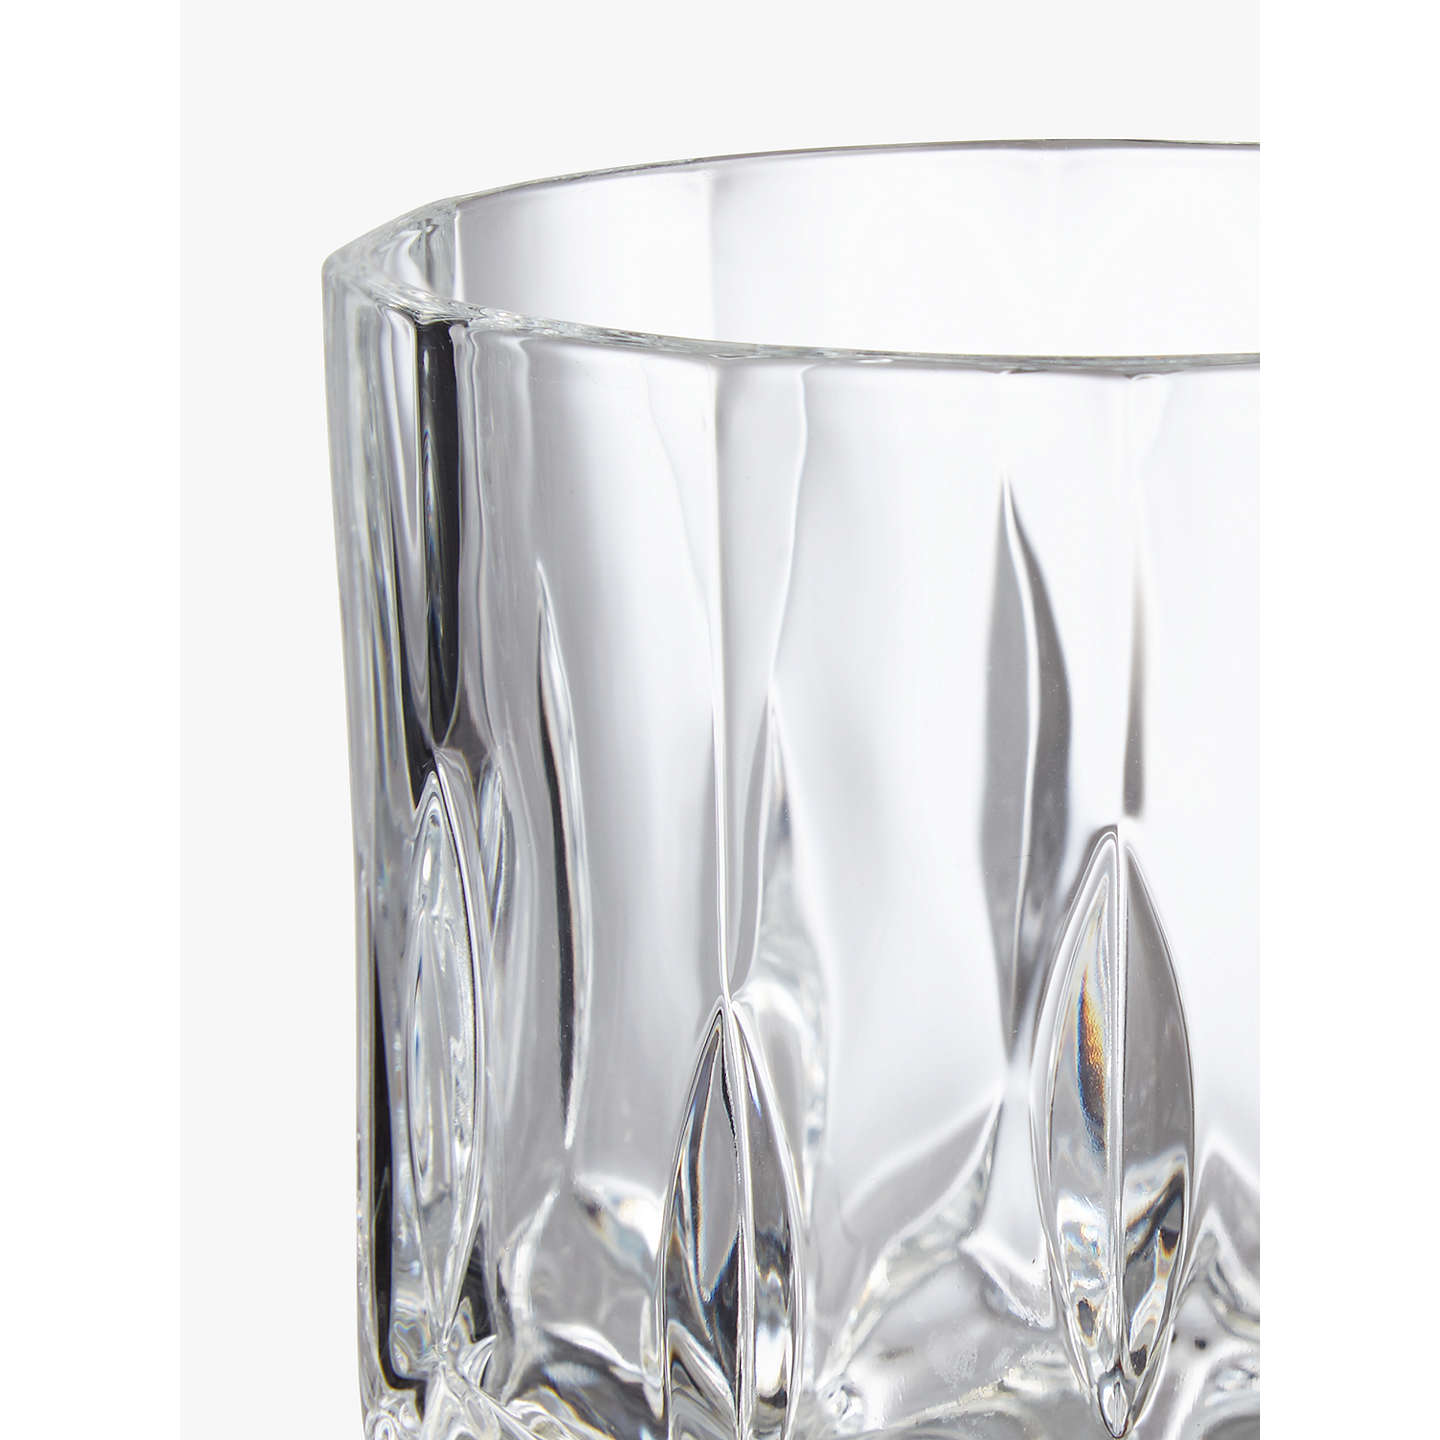 BuyJohn Lewis Paloma Opera Double Old Fashioned Crystal Glass Tumbler Online at johnlewis.com